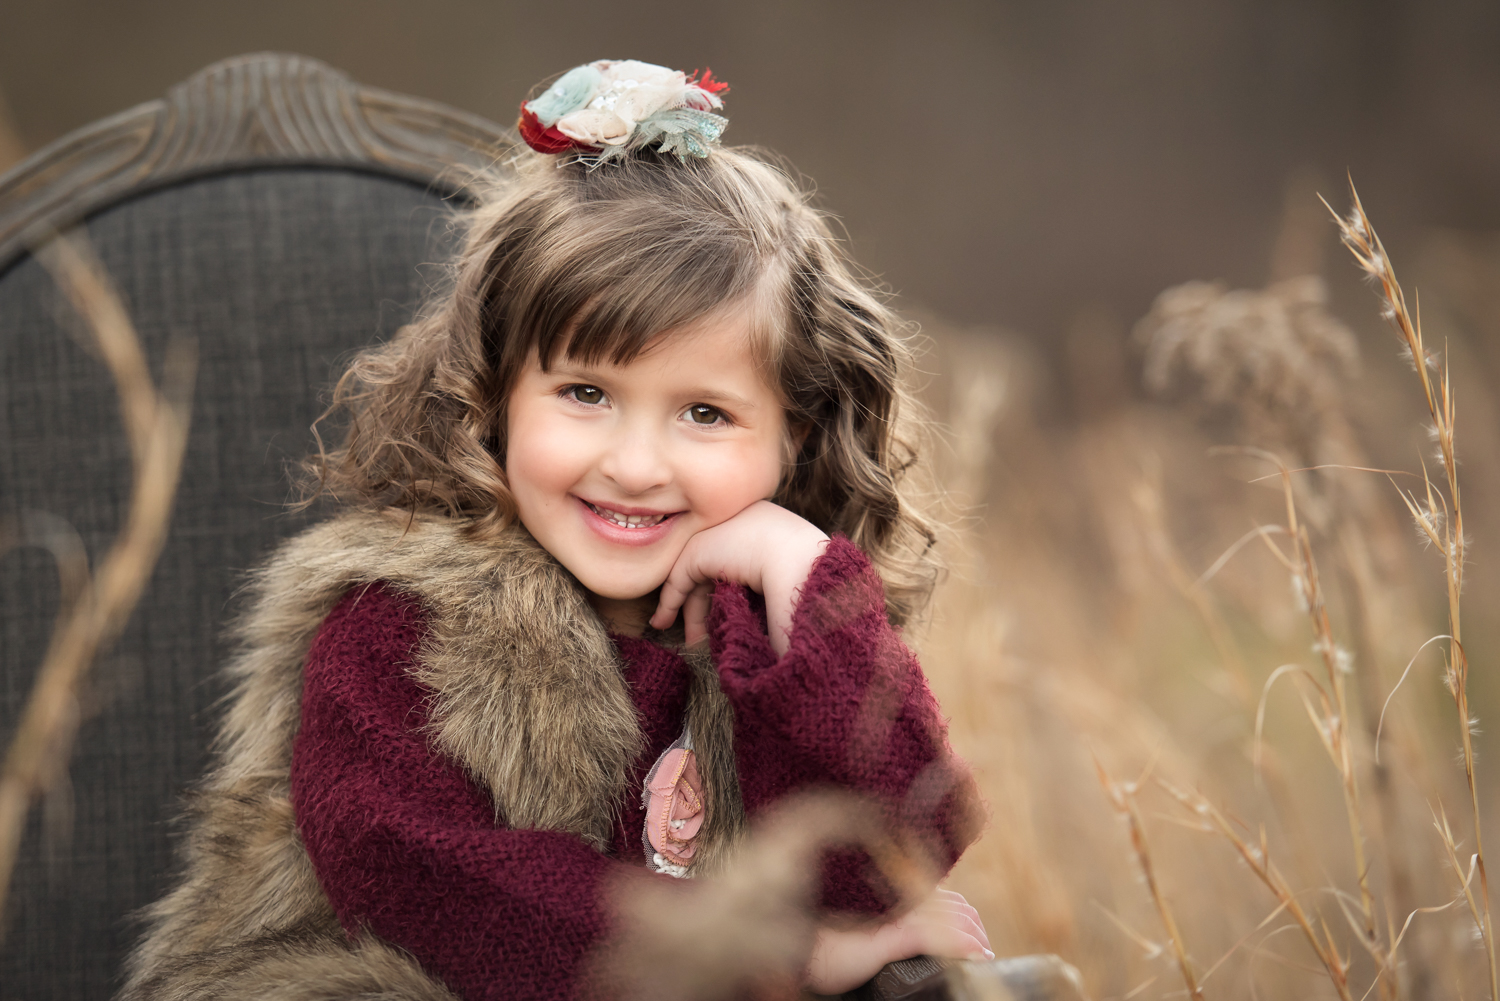 Family loving each other, Canonsburg, Family Photography, little girls, 4 year old portrait